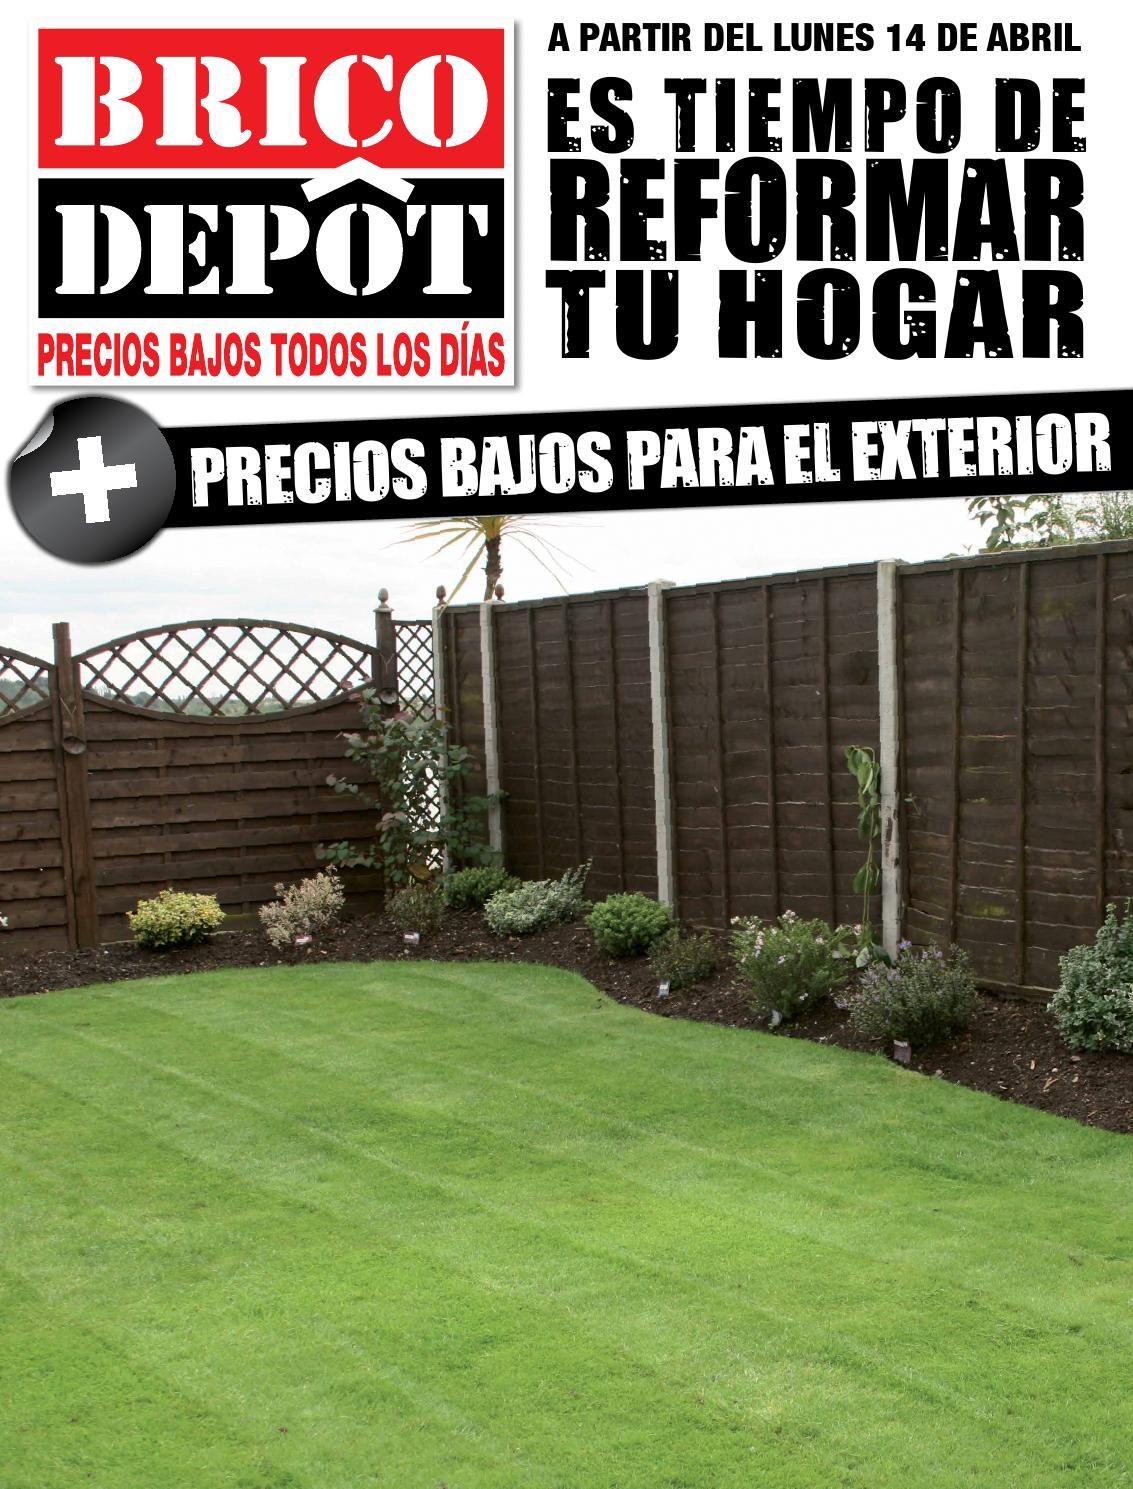 Catalogo especial jard n sevilla norte by losdescuentos for Gresite piscina bricodepot